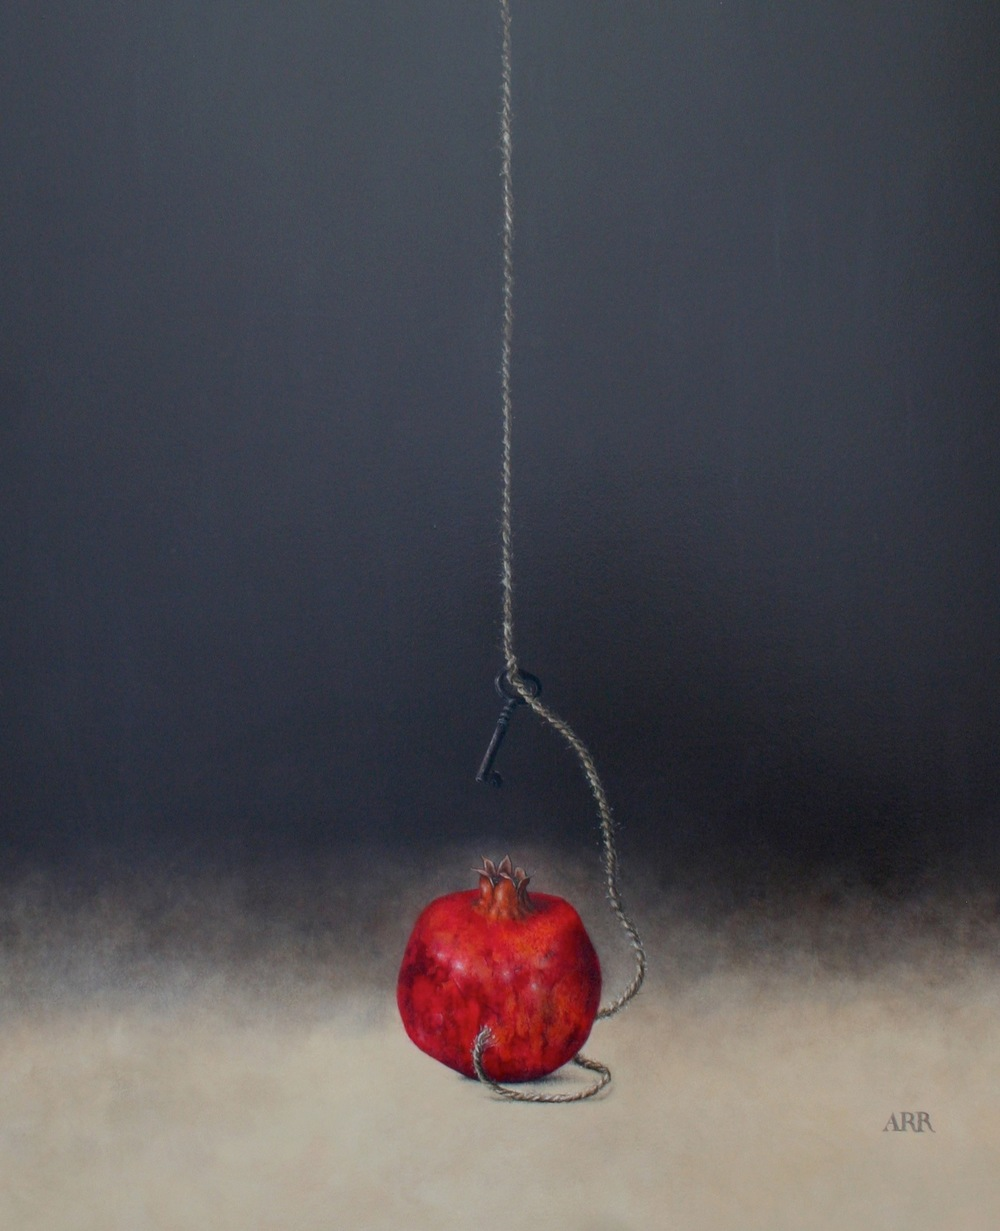 Pomegranate with Hanging Key